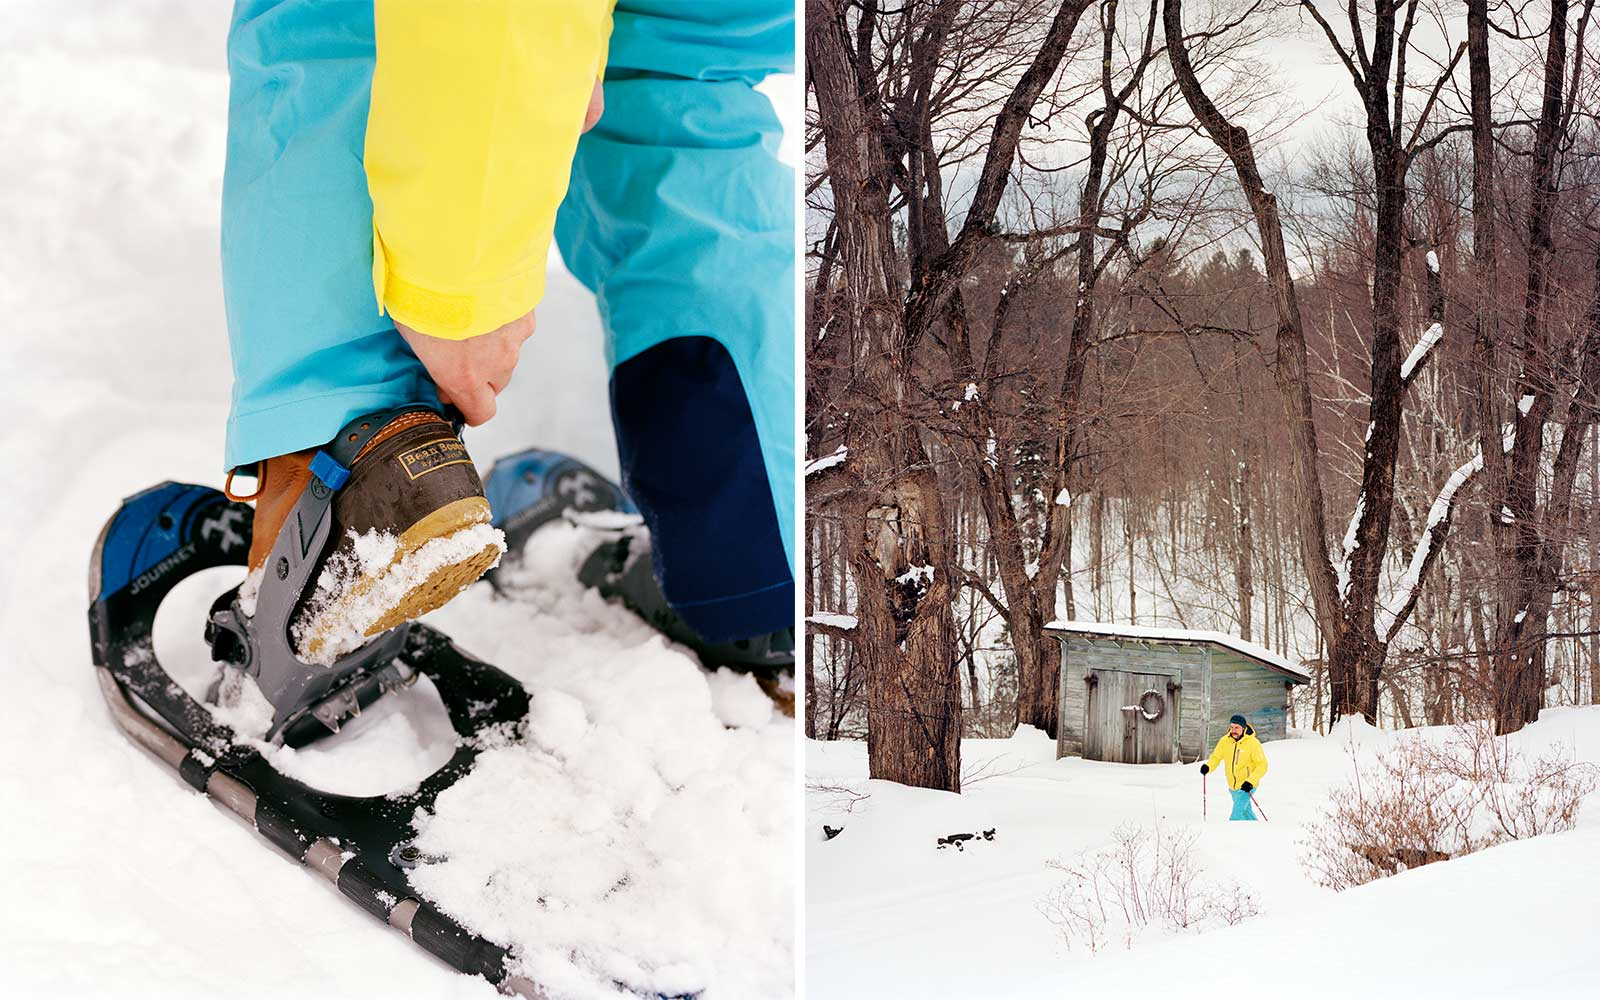 Snowshoeing at Twin Farms luxury resort in Vermont